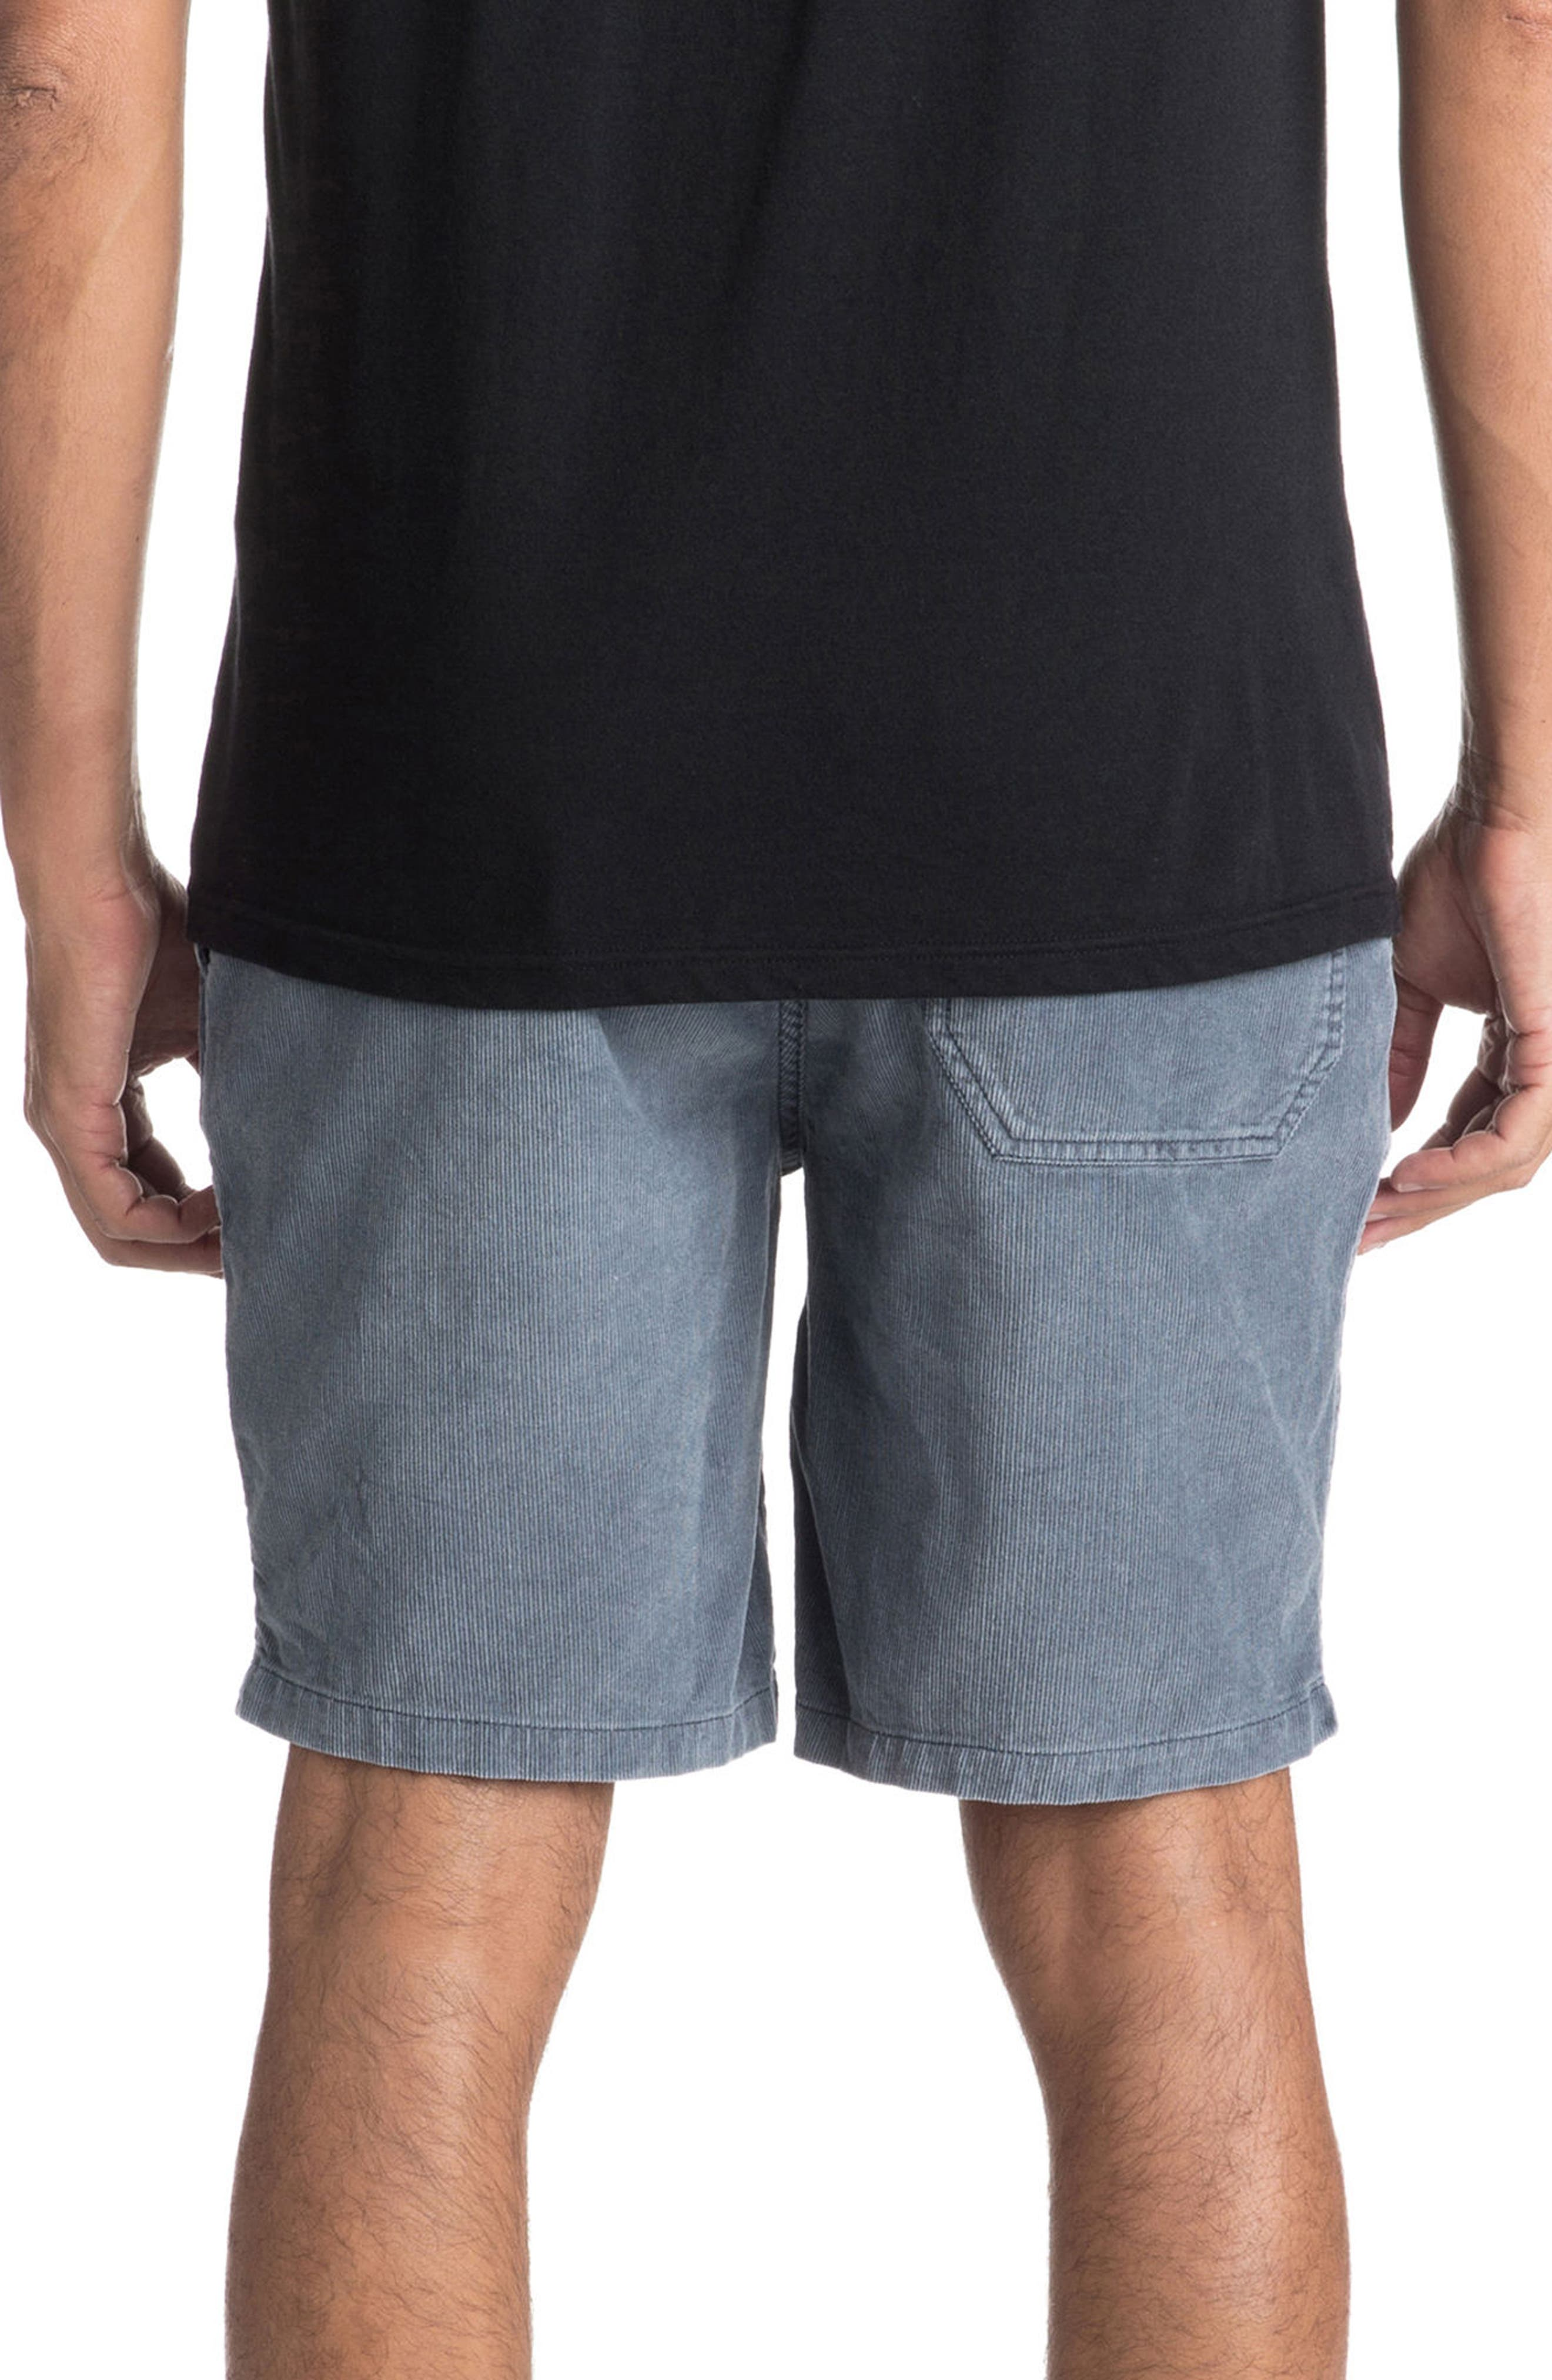 Peaky Mind Shorts,                             Alternate thumbnail 2, color,                             Ombre Blue